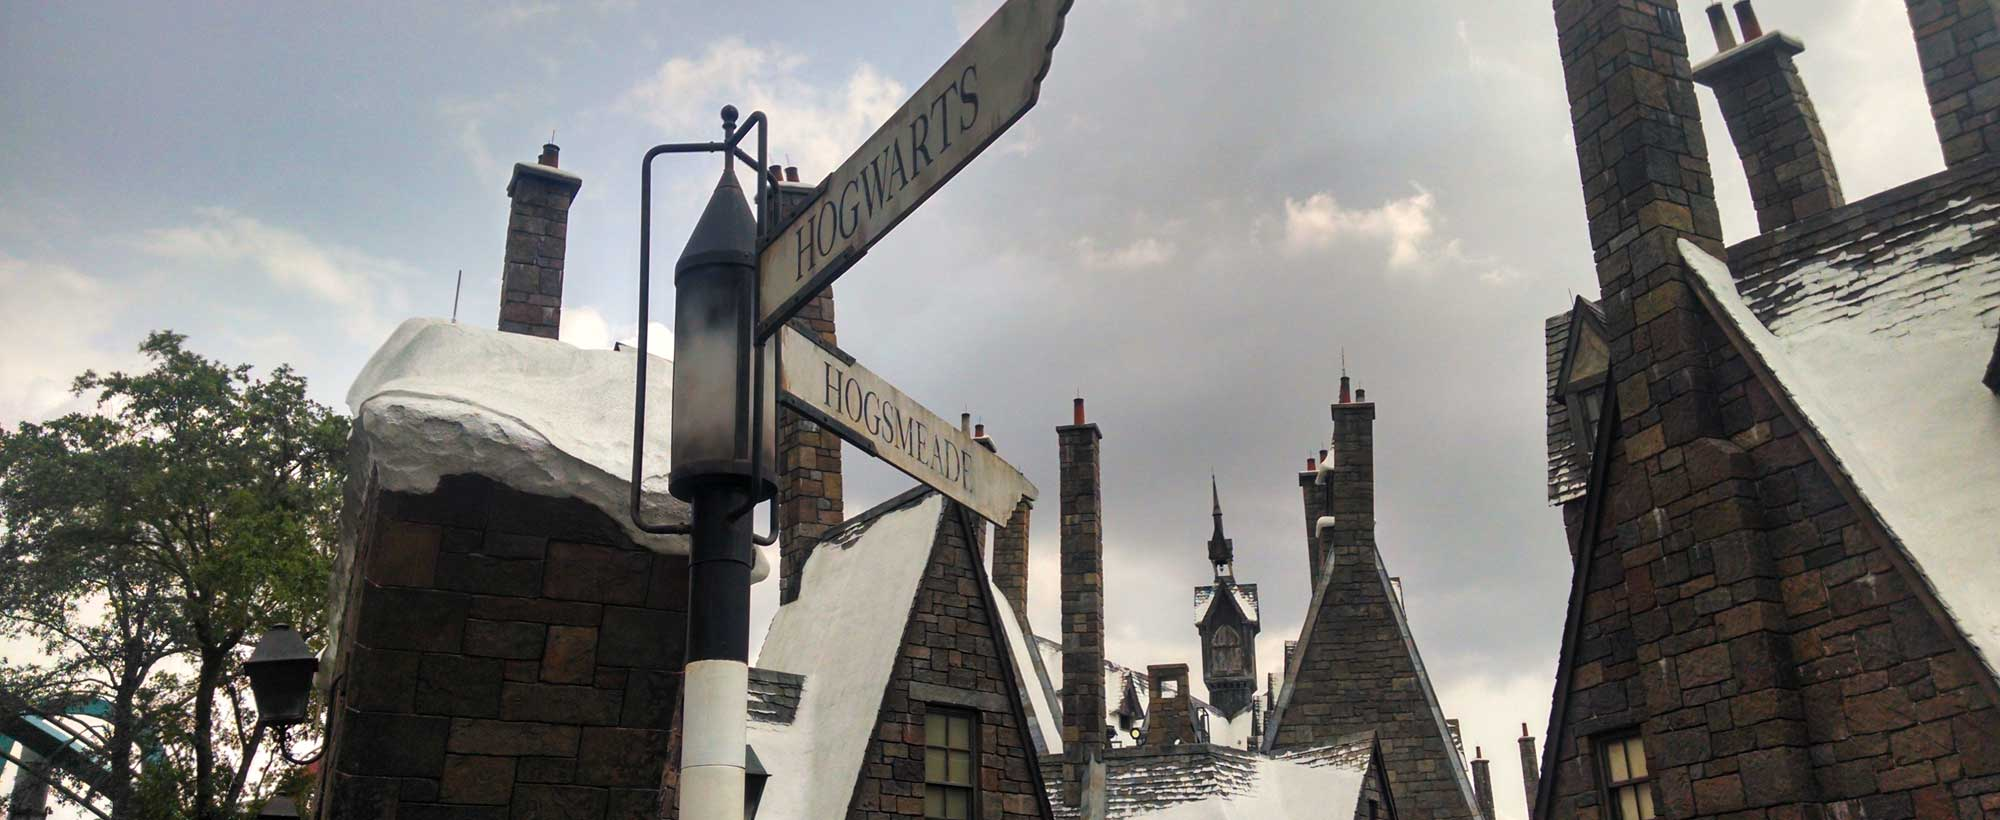 Street signs in Hogsmeade